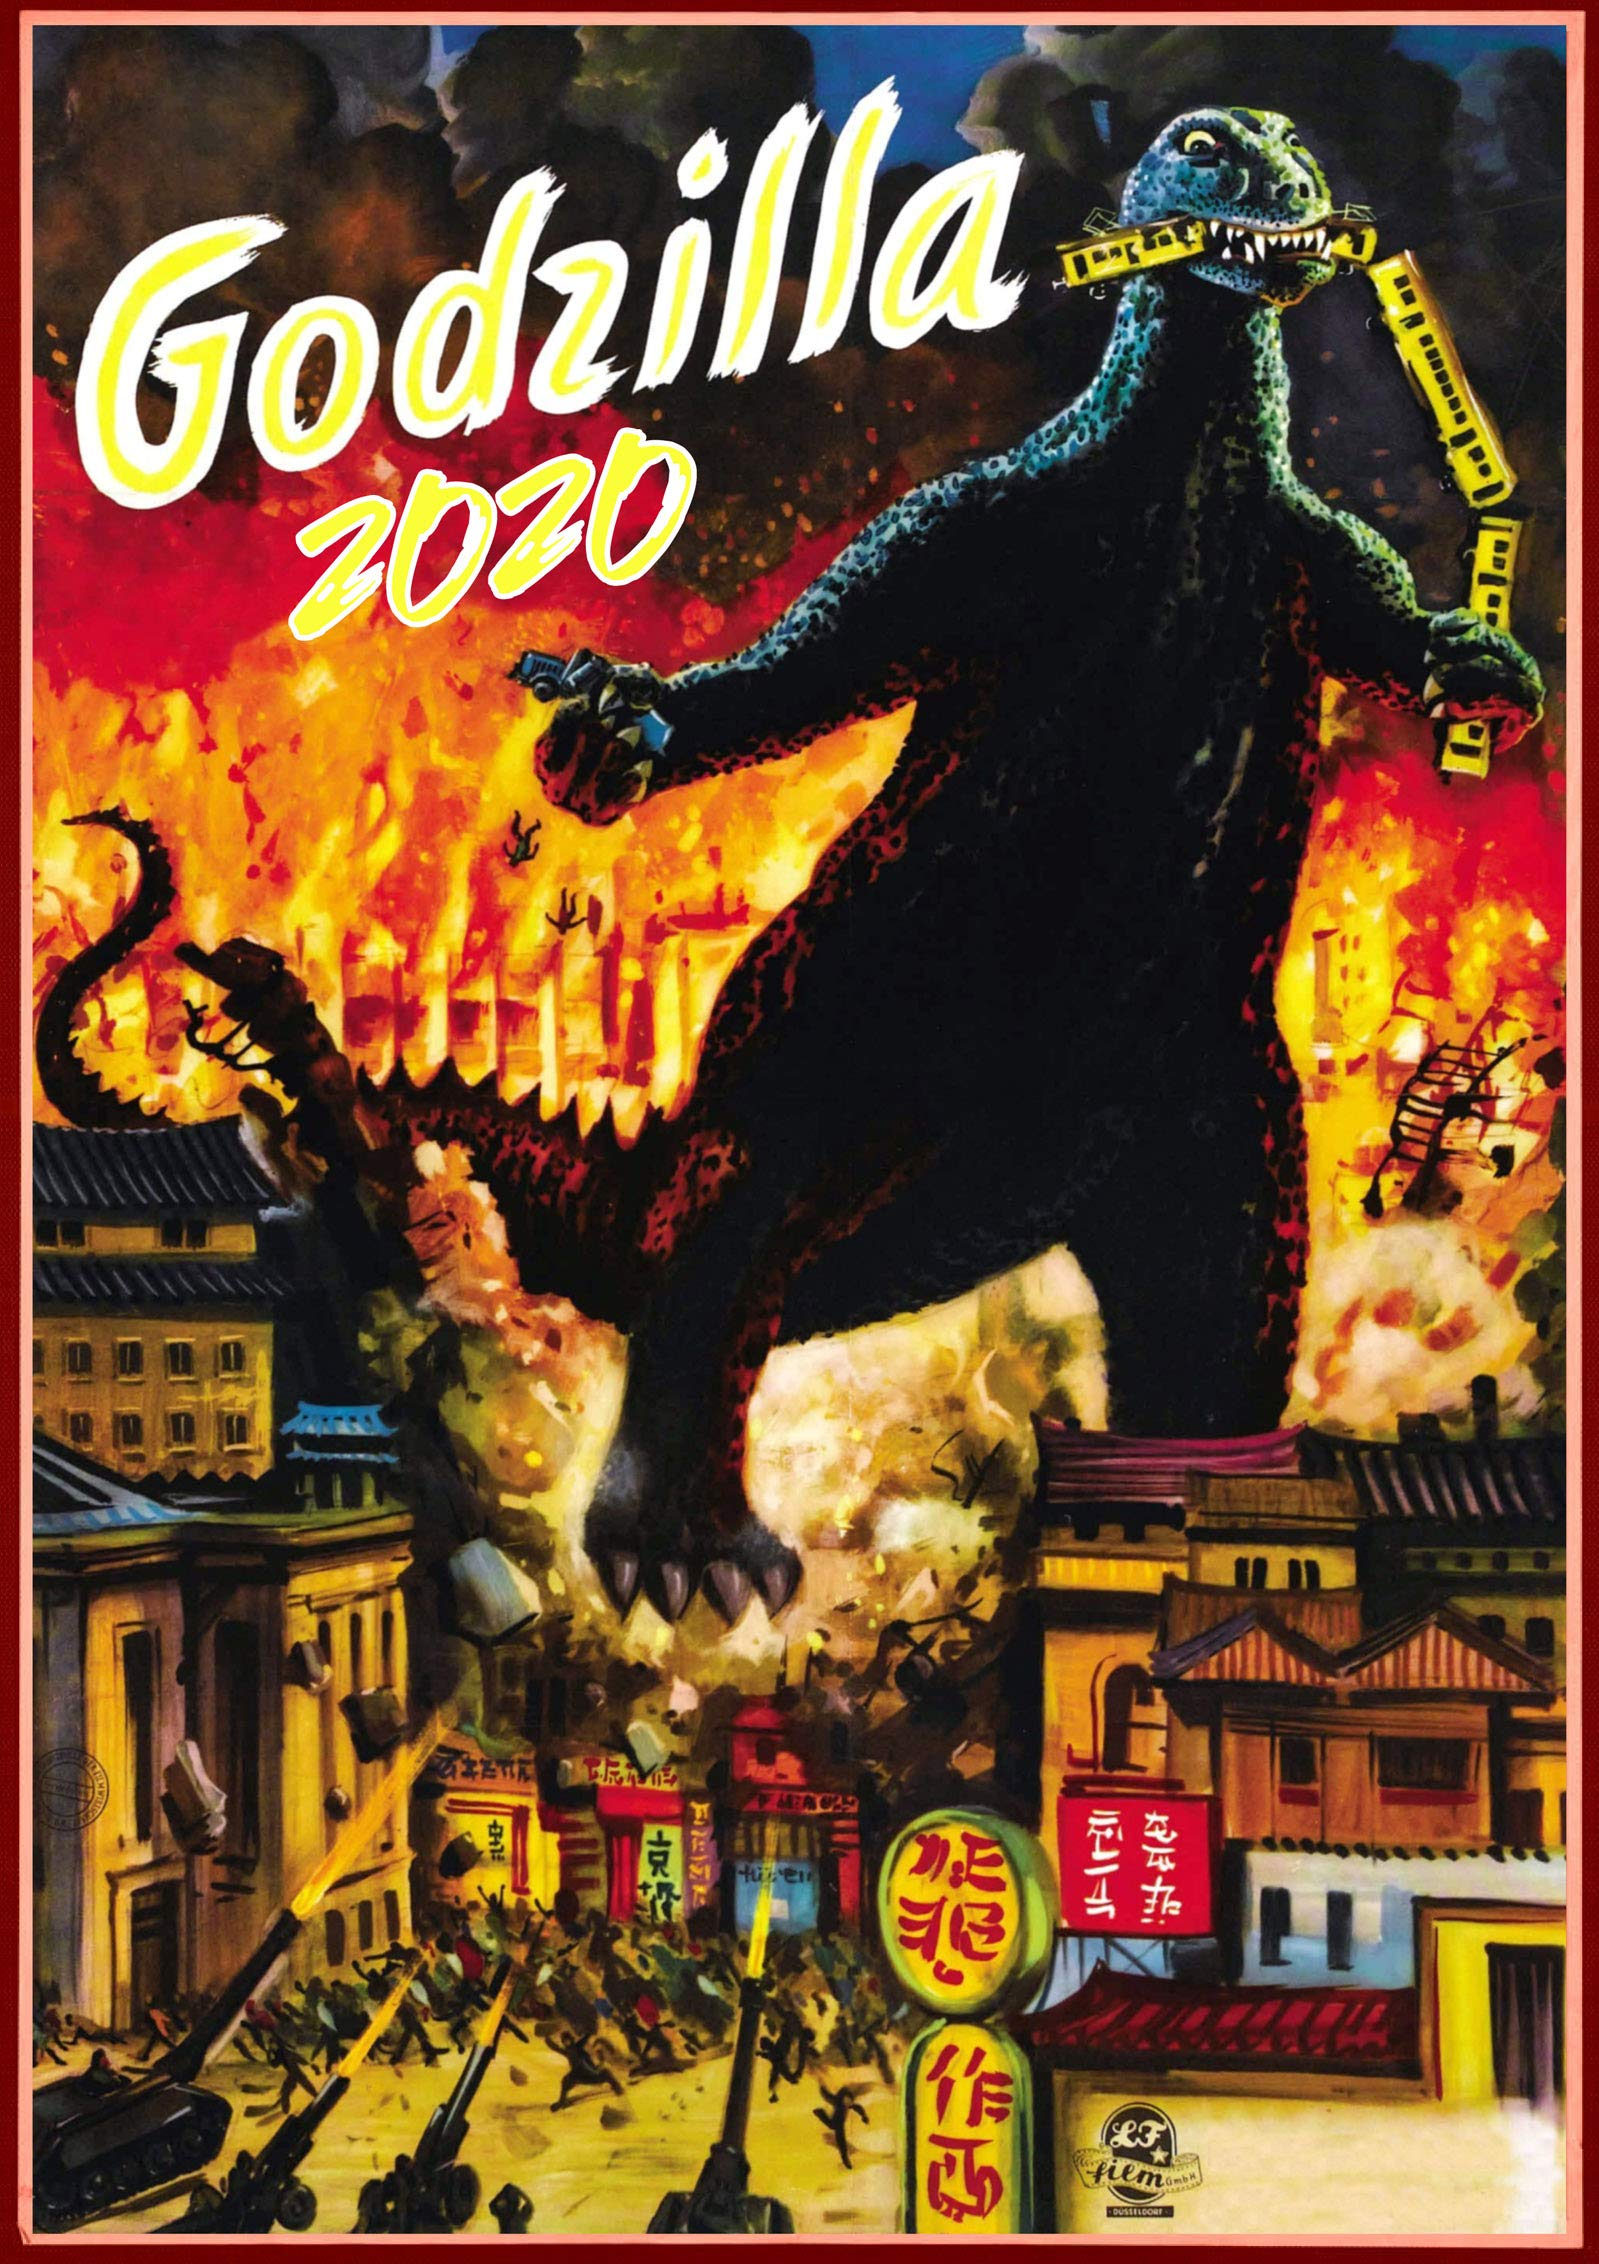 Godzilla Wall Calendar 2020 [12 pages 8''x11''] Kaiju Horror Sci Fi Giant Monster Vintage Trash Movie Posters M-435 by Pixiluv